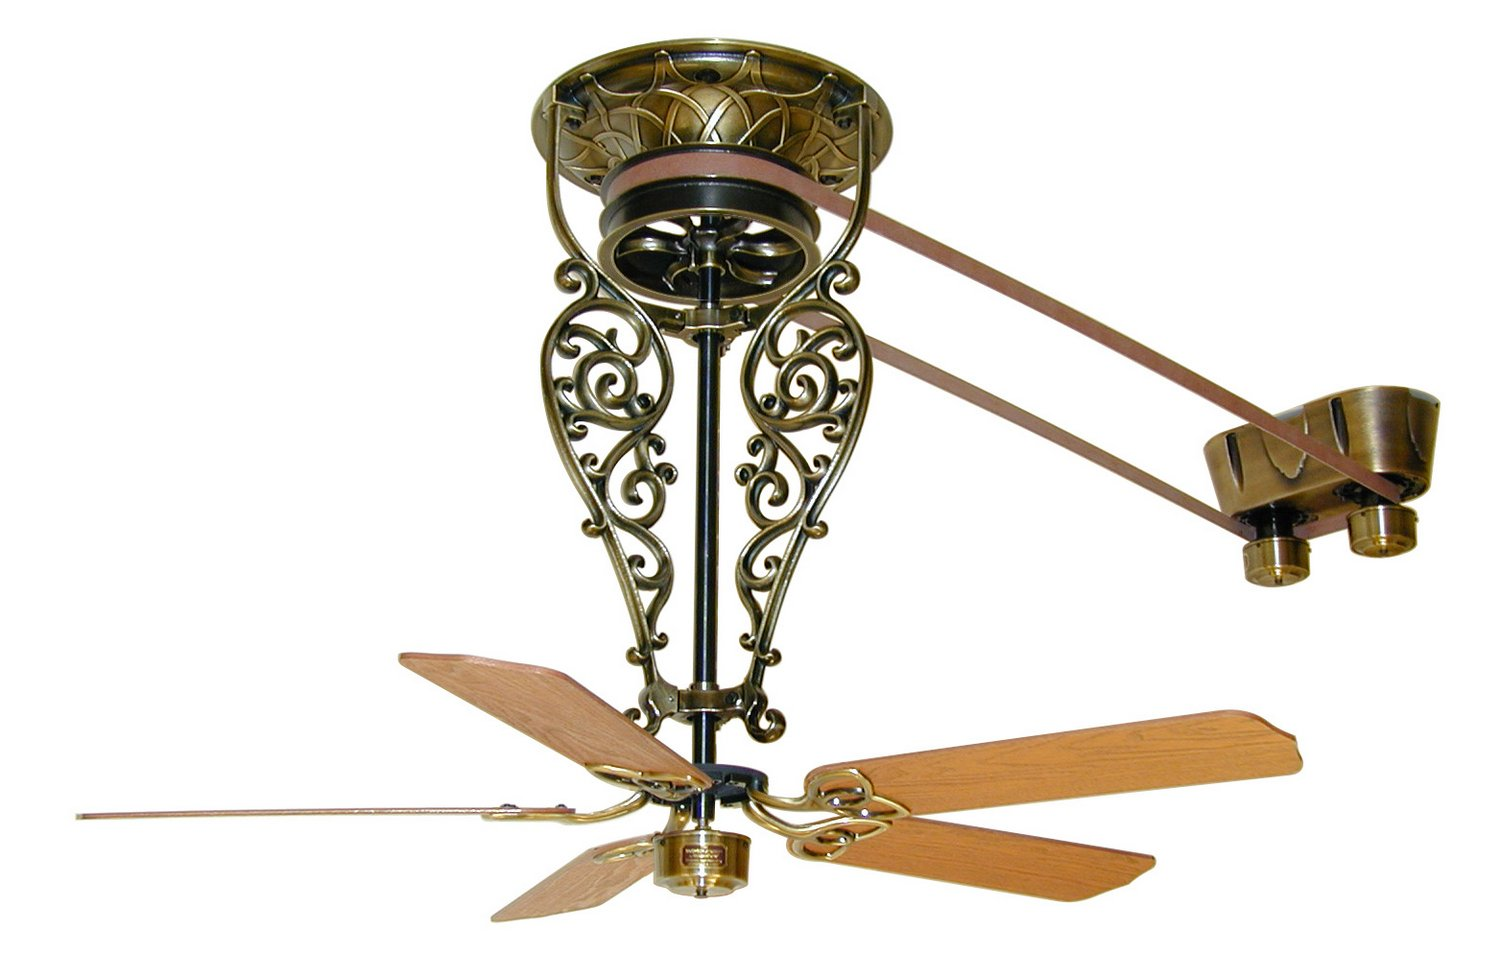 Fanimation FP580AB-18-L1 Fan, Antique Brass